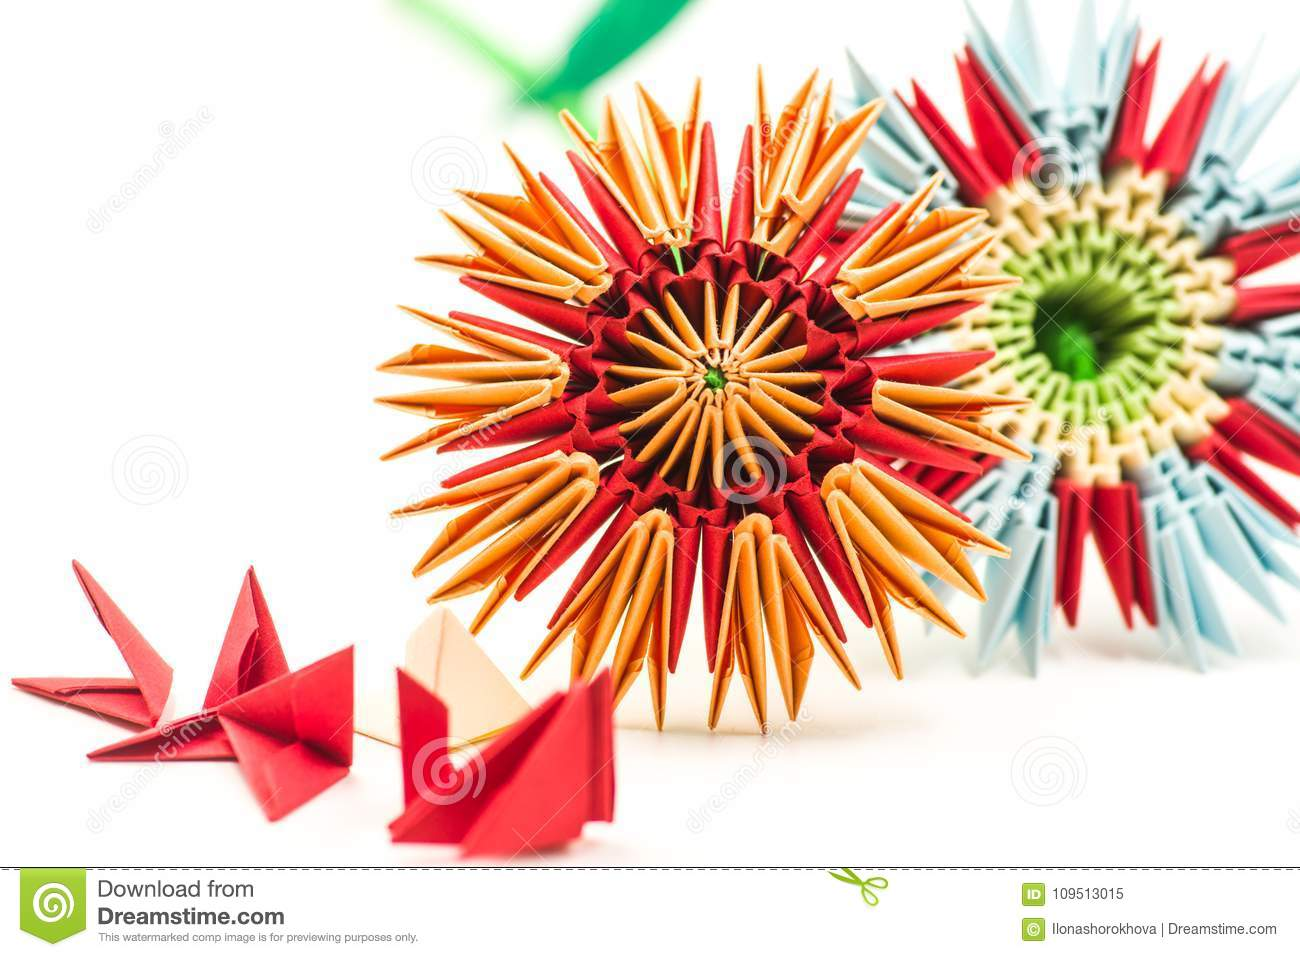 Two Modular Origami Flowers With Module Blocks Isolated On White